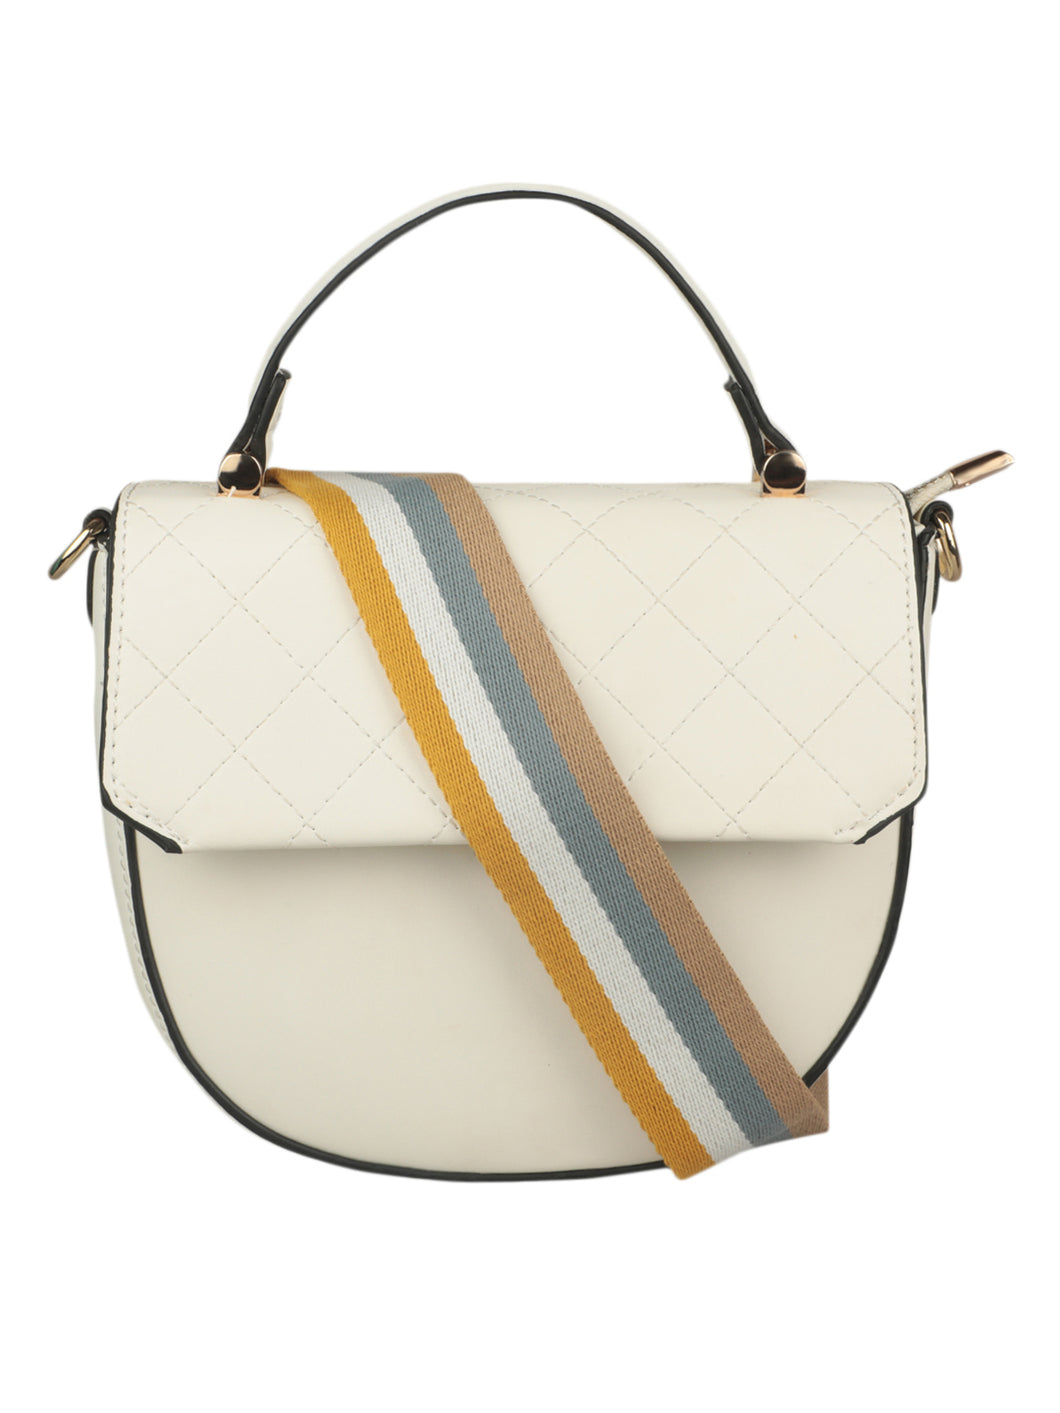 WHITE SLING BAG WITH RAINBOW STRAP